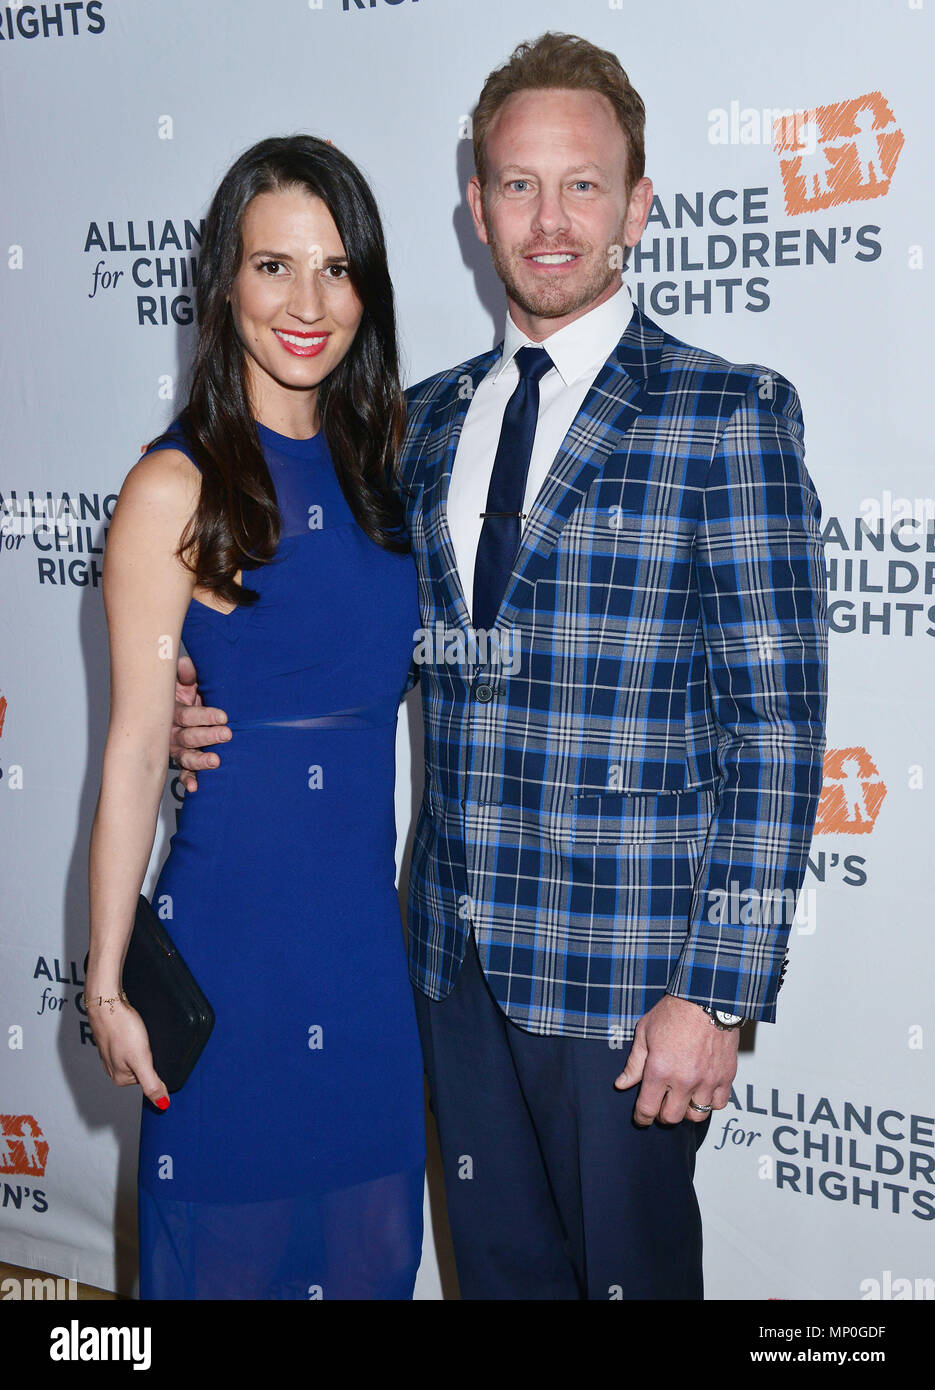 Ian Ziering, Erin Kristine Ludwig 012 arriving The Alliance for ChildrenÕs RightsÕ 24th Annual Dinner at the Beverly Hilton Hotel in Los Angeles. March 10, 2016.Ian Ziering, Erin Kristine Ludwig 012 ------------- Red Carpet Event, Vertical, USA, Film Industry, Celebrities,  Photography, Bestof, Arts Culture and Entertainment, Topix Celebrities fashion /  Vertical, Best of, Event in Hollywood Life - California,  Red Carpet and backstage, USA, Film Industry, Celebrities,  movie celebrities, TV celebrities, Music celebrities, Photography, Bestof, Arts Culture and Entertainment,  Topix, vertical,  - Stock Image